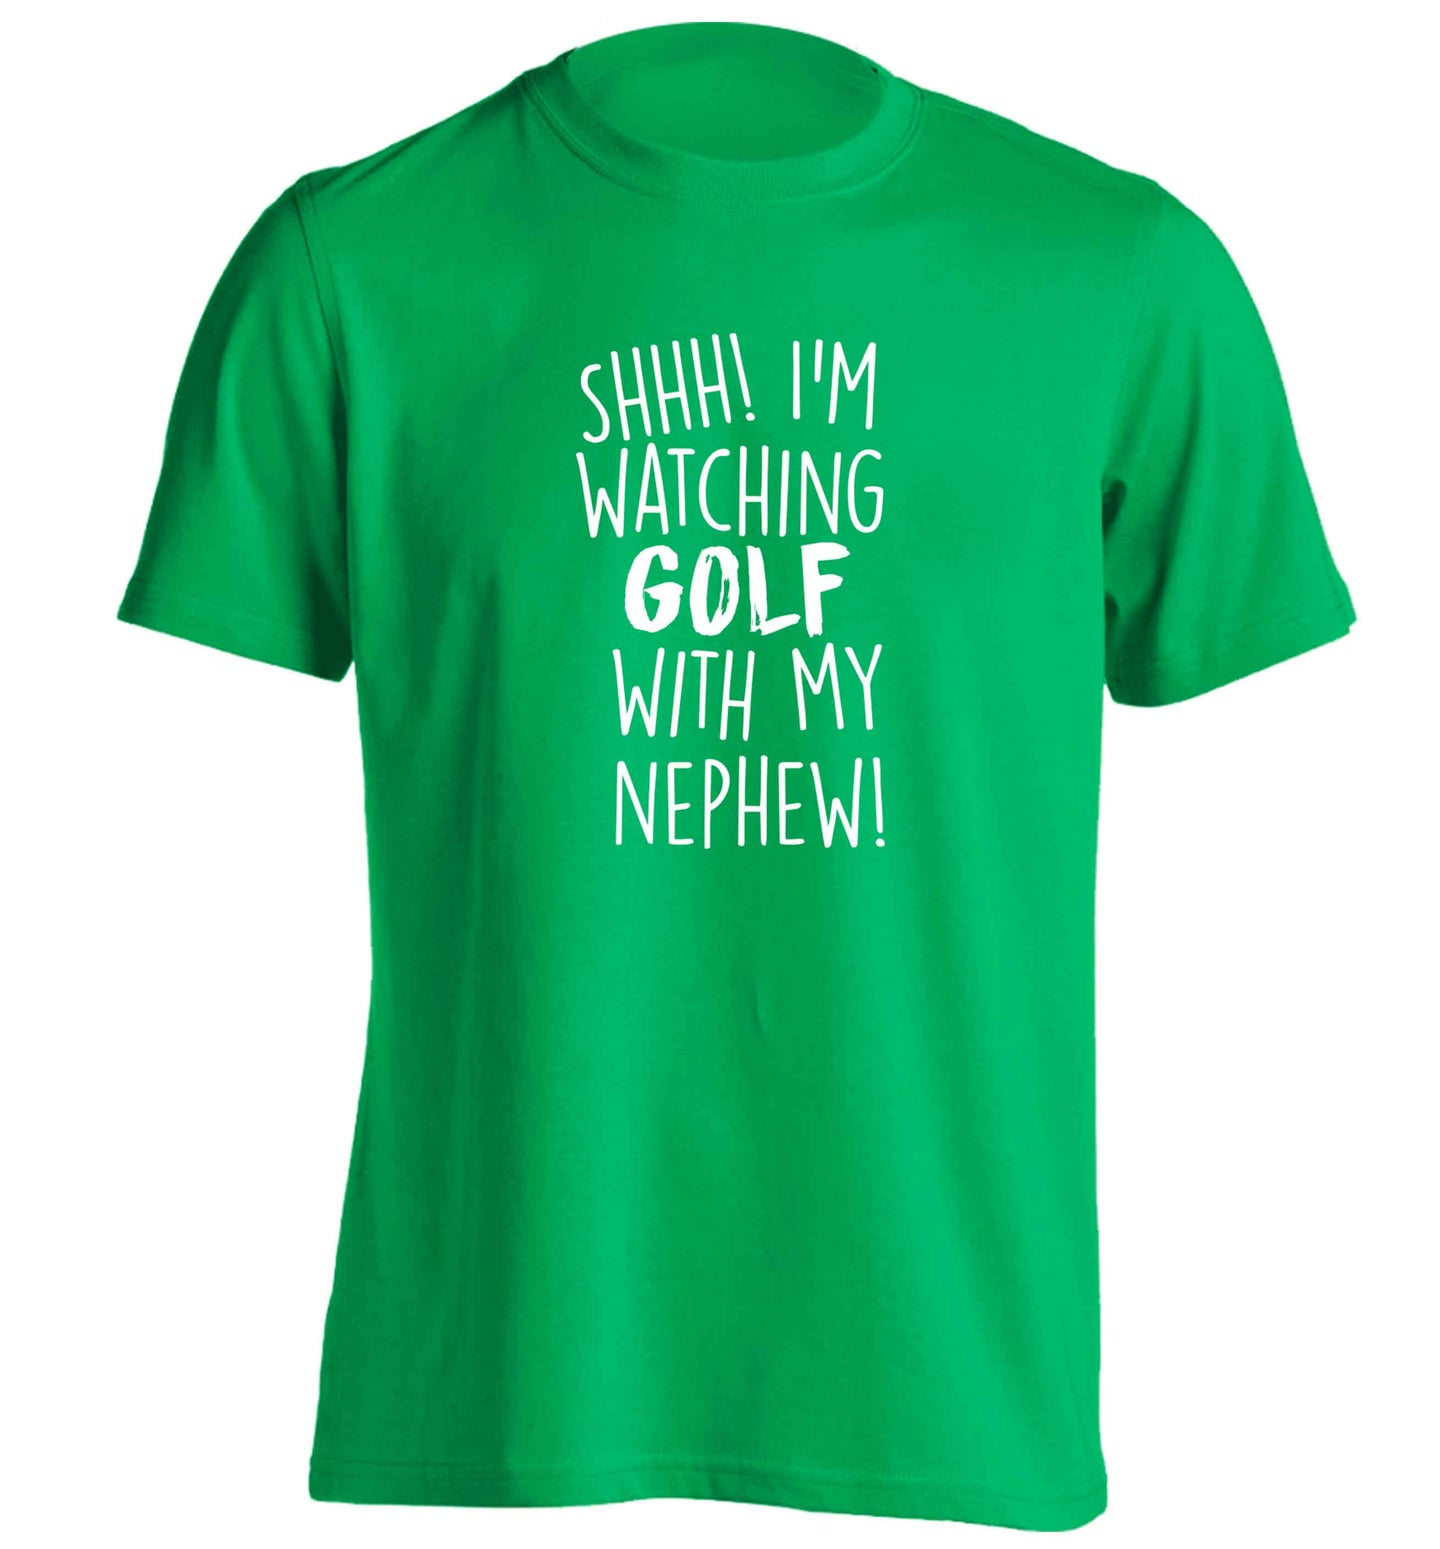 Shh I'm watching golf with my nephew adults unisex green Tshirt 2XL